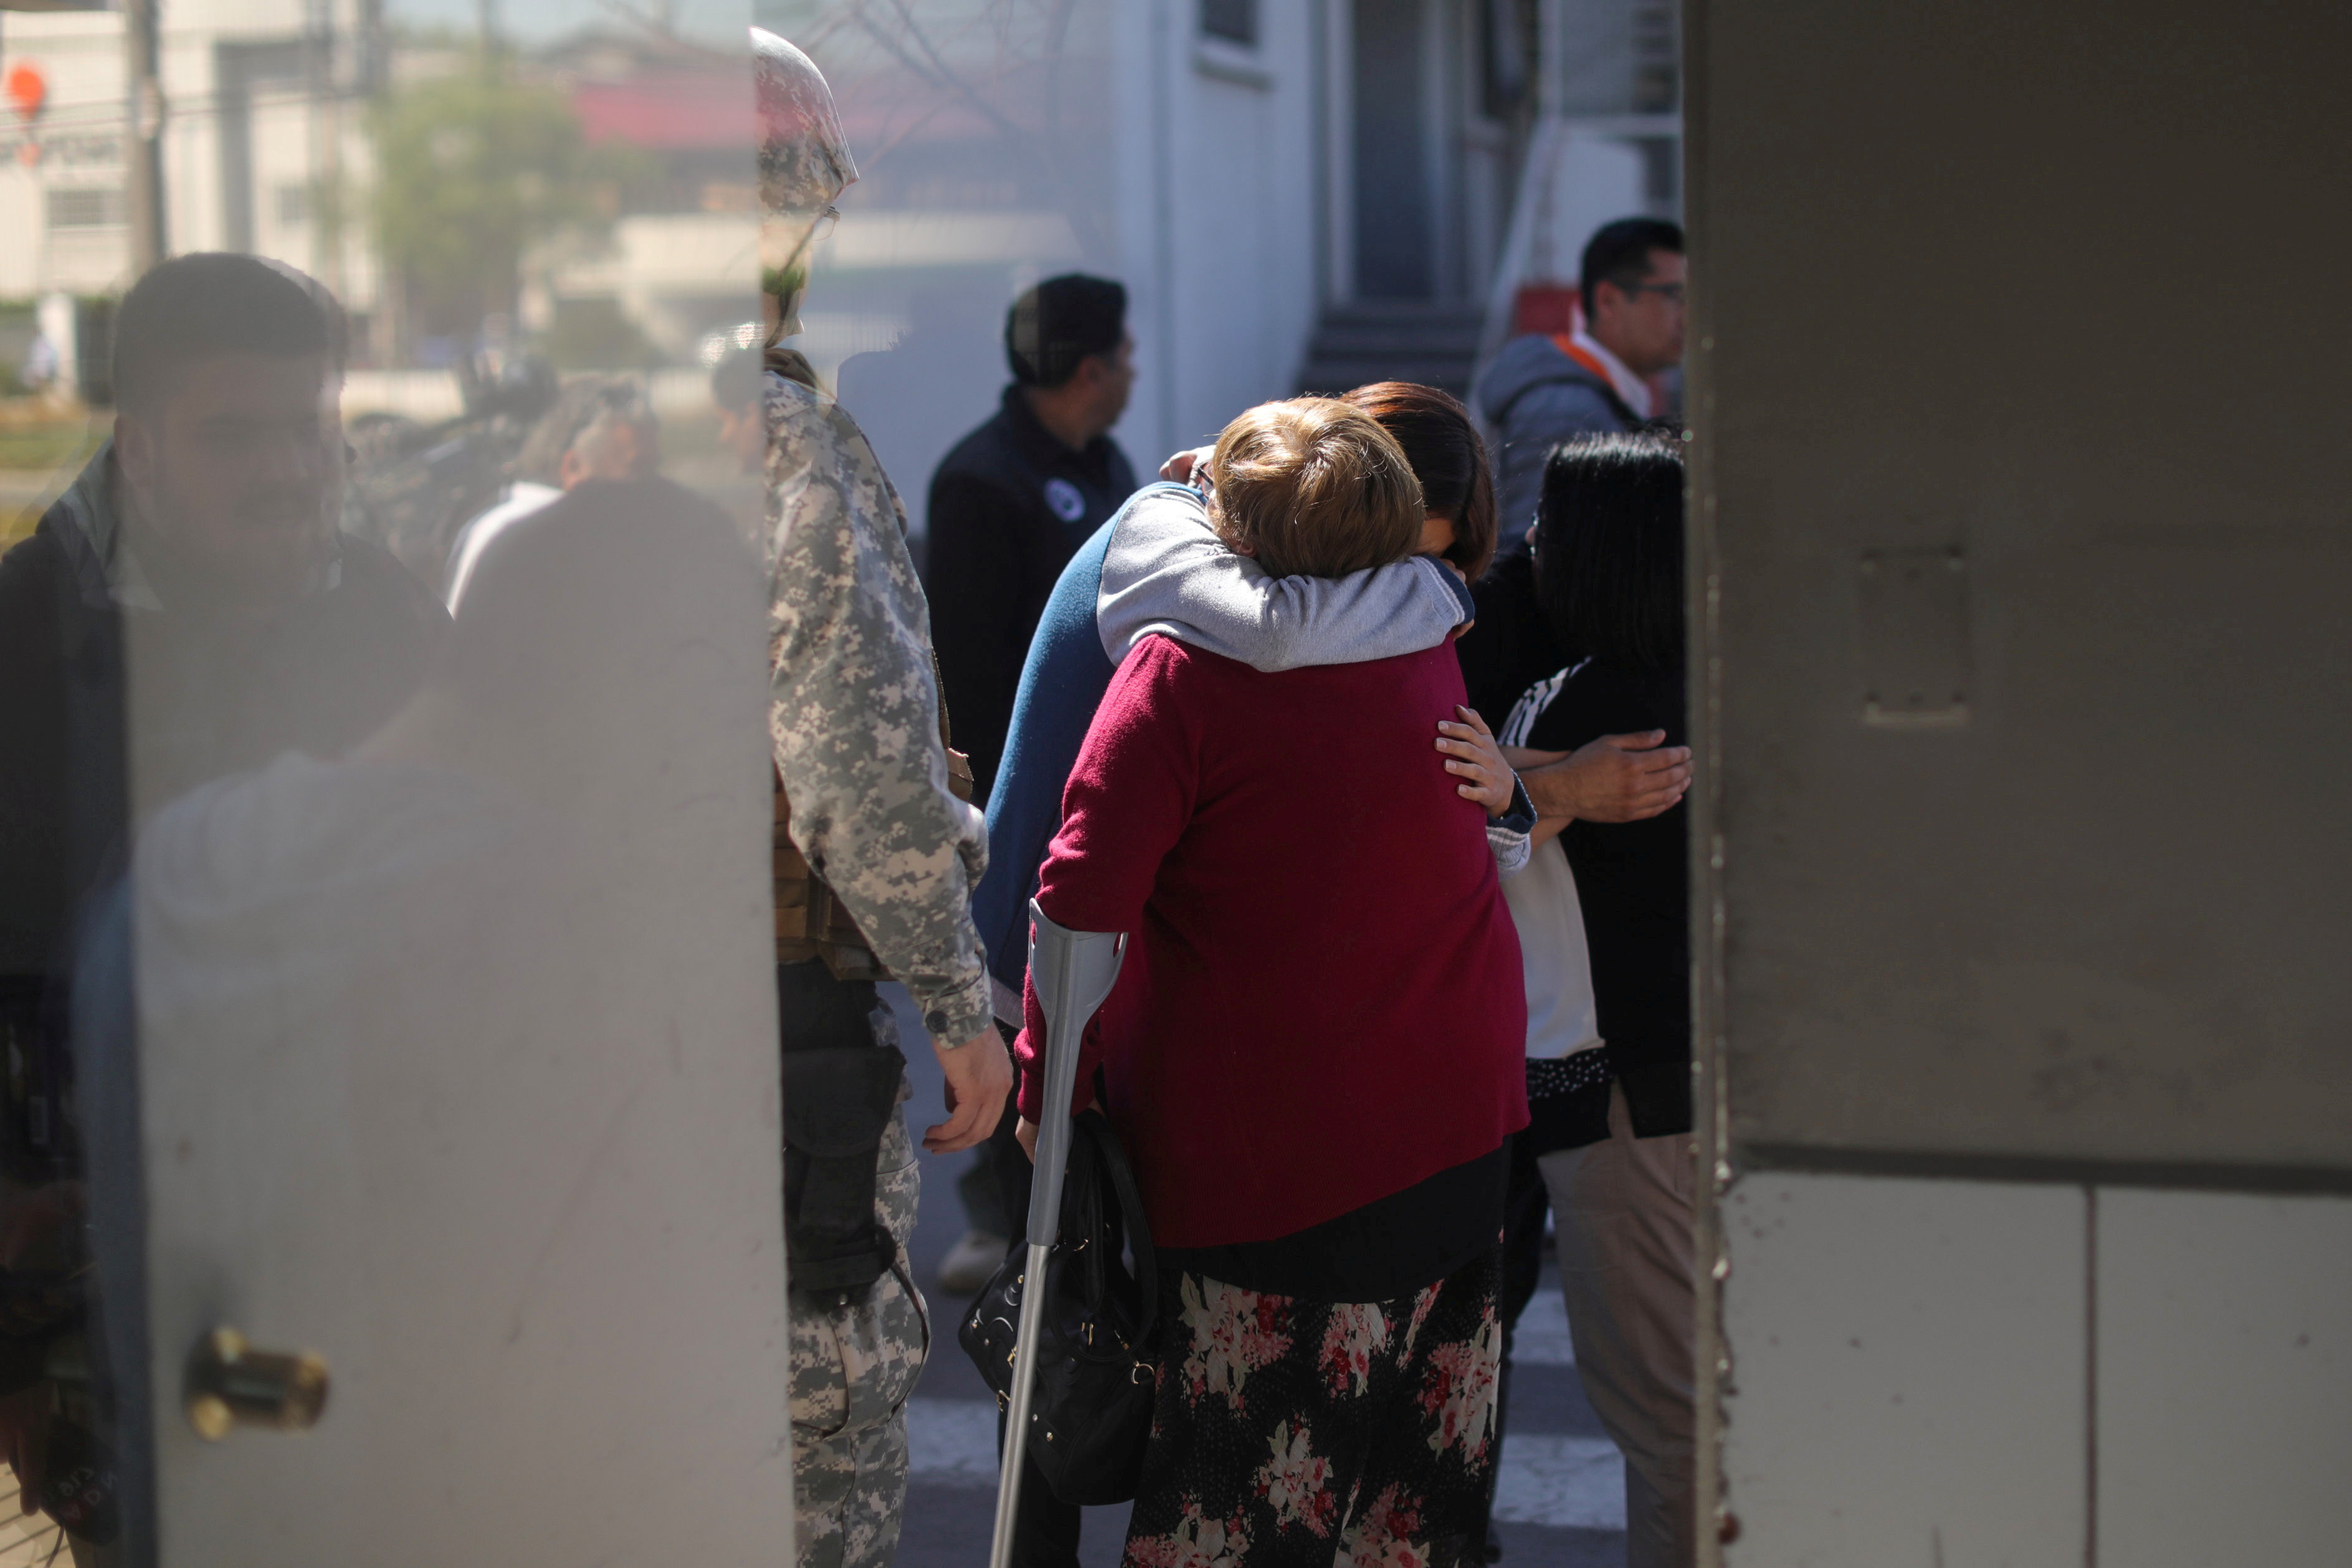 FILE PHOTO: People react inside an air force base in Santiago